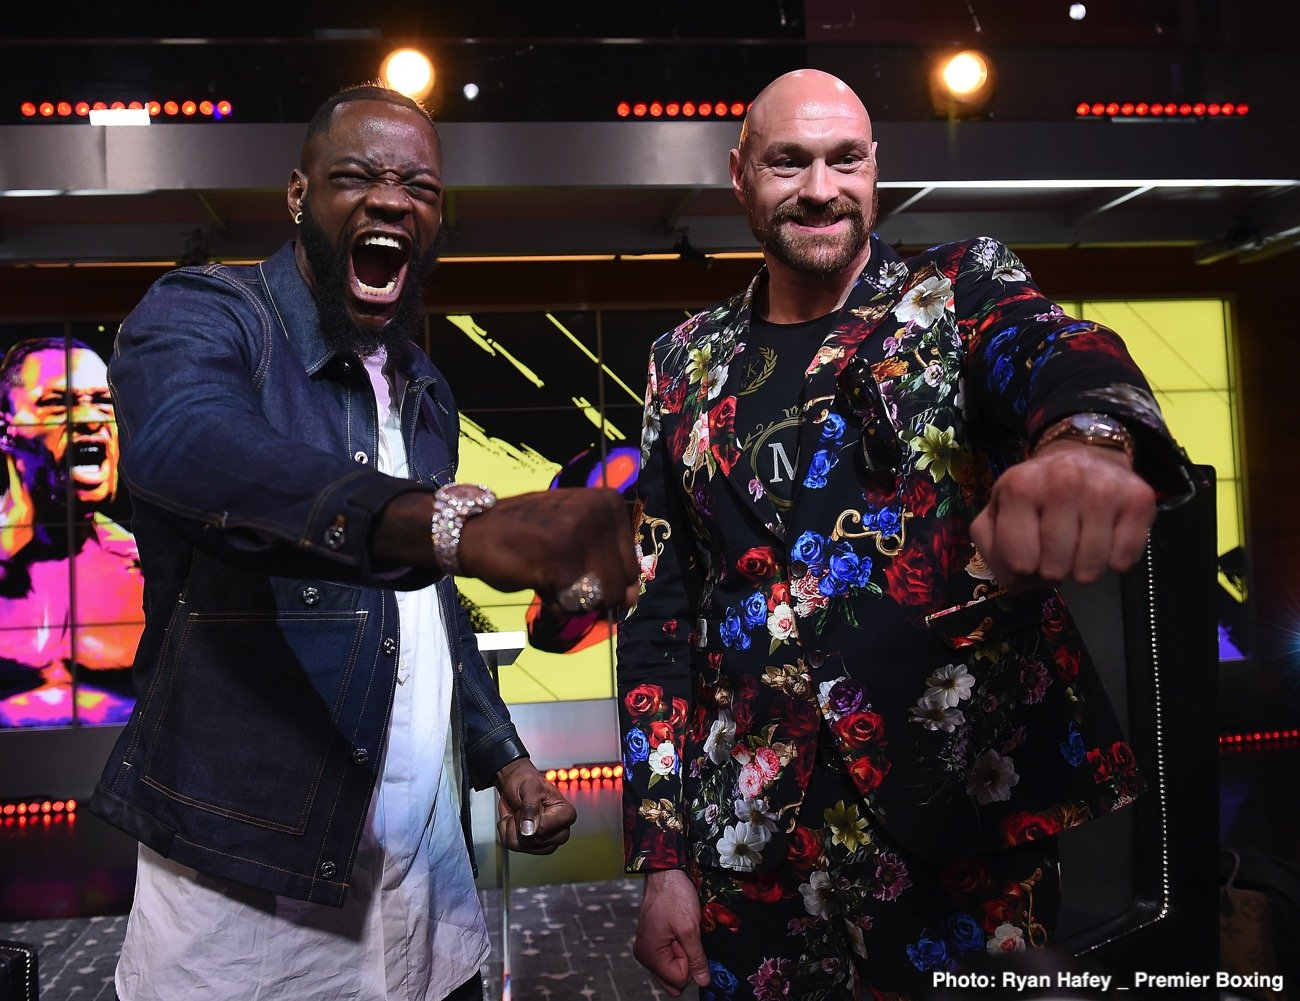 Tyson Fury - With original venue Las Vegas being just about ruled out for the contracted third fight between Tyson Fury and Deontay Wilder (who has zero inclination to take step aside money and allow Fury to fight anyone else, so determined to get revenge as the former WBC heavyweight champion is), promoter Bob Arum is exploring other options.